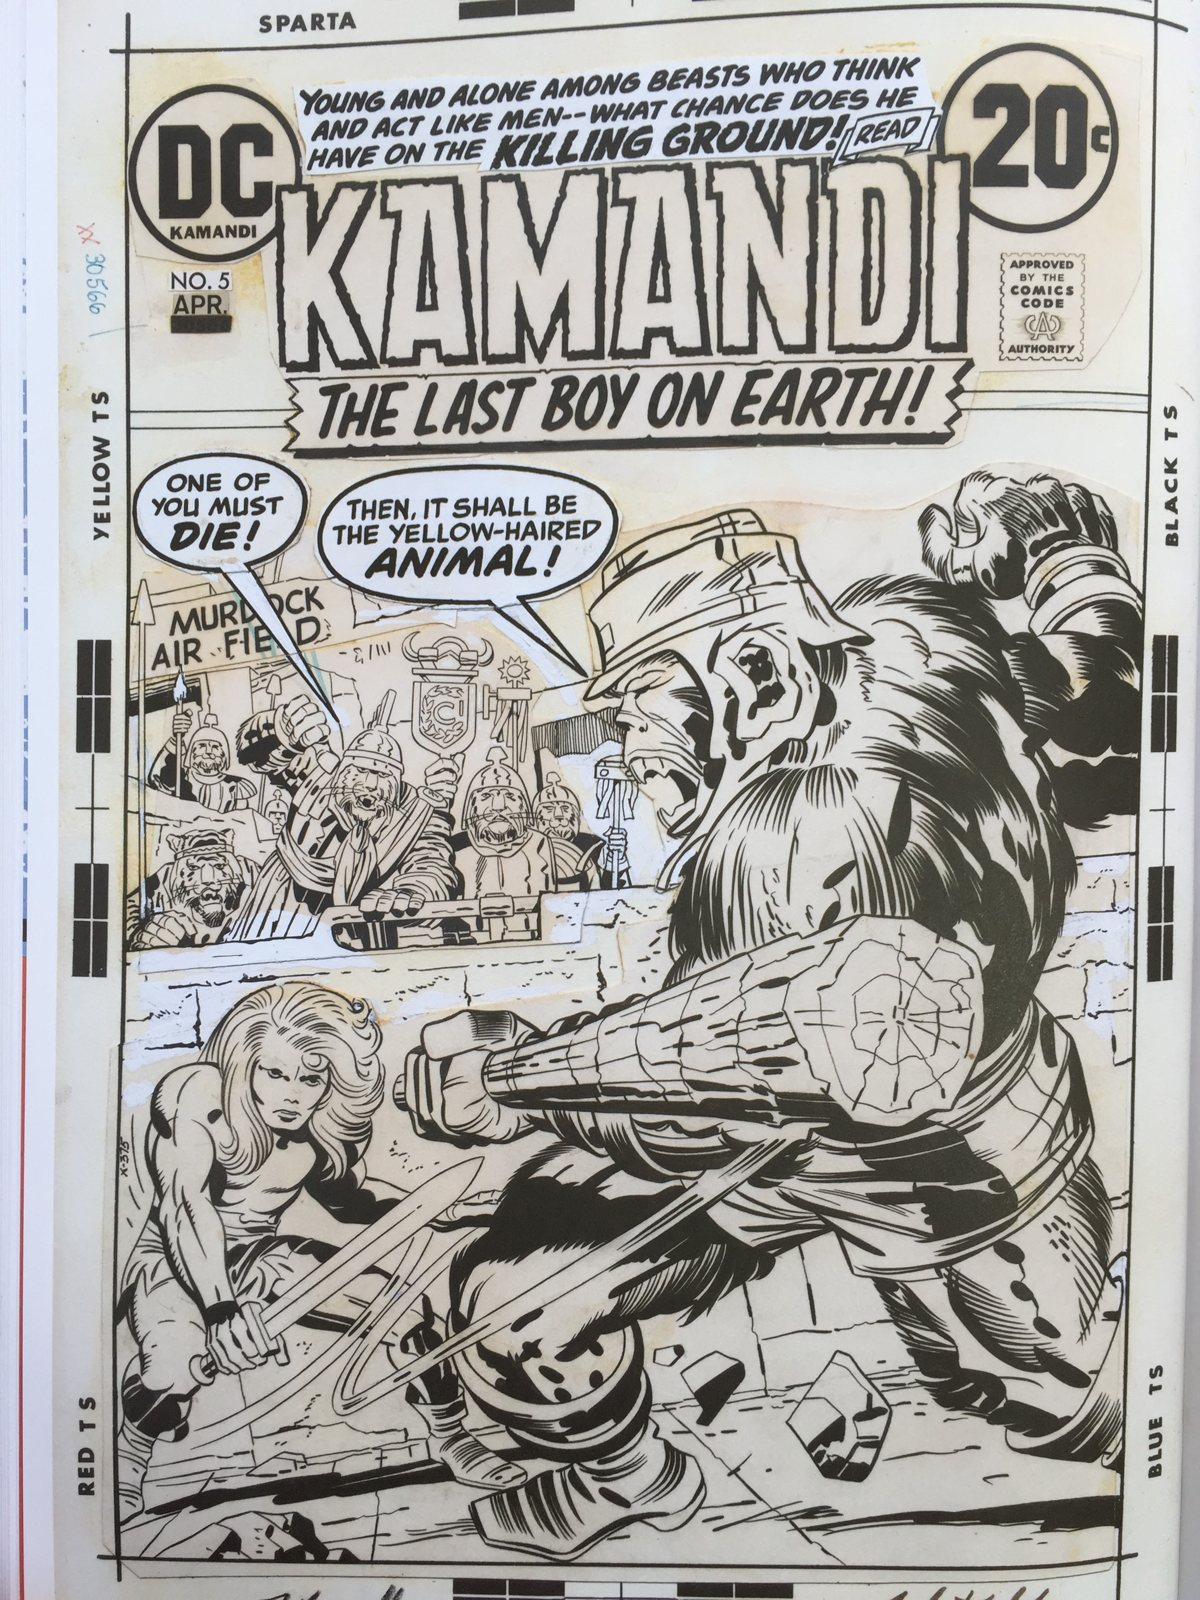 Jack Kirby Kamandi Artist Edition review